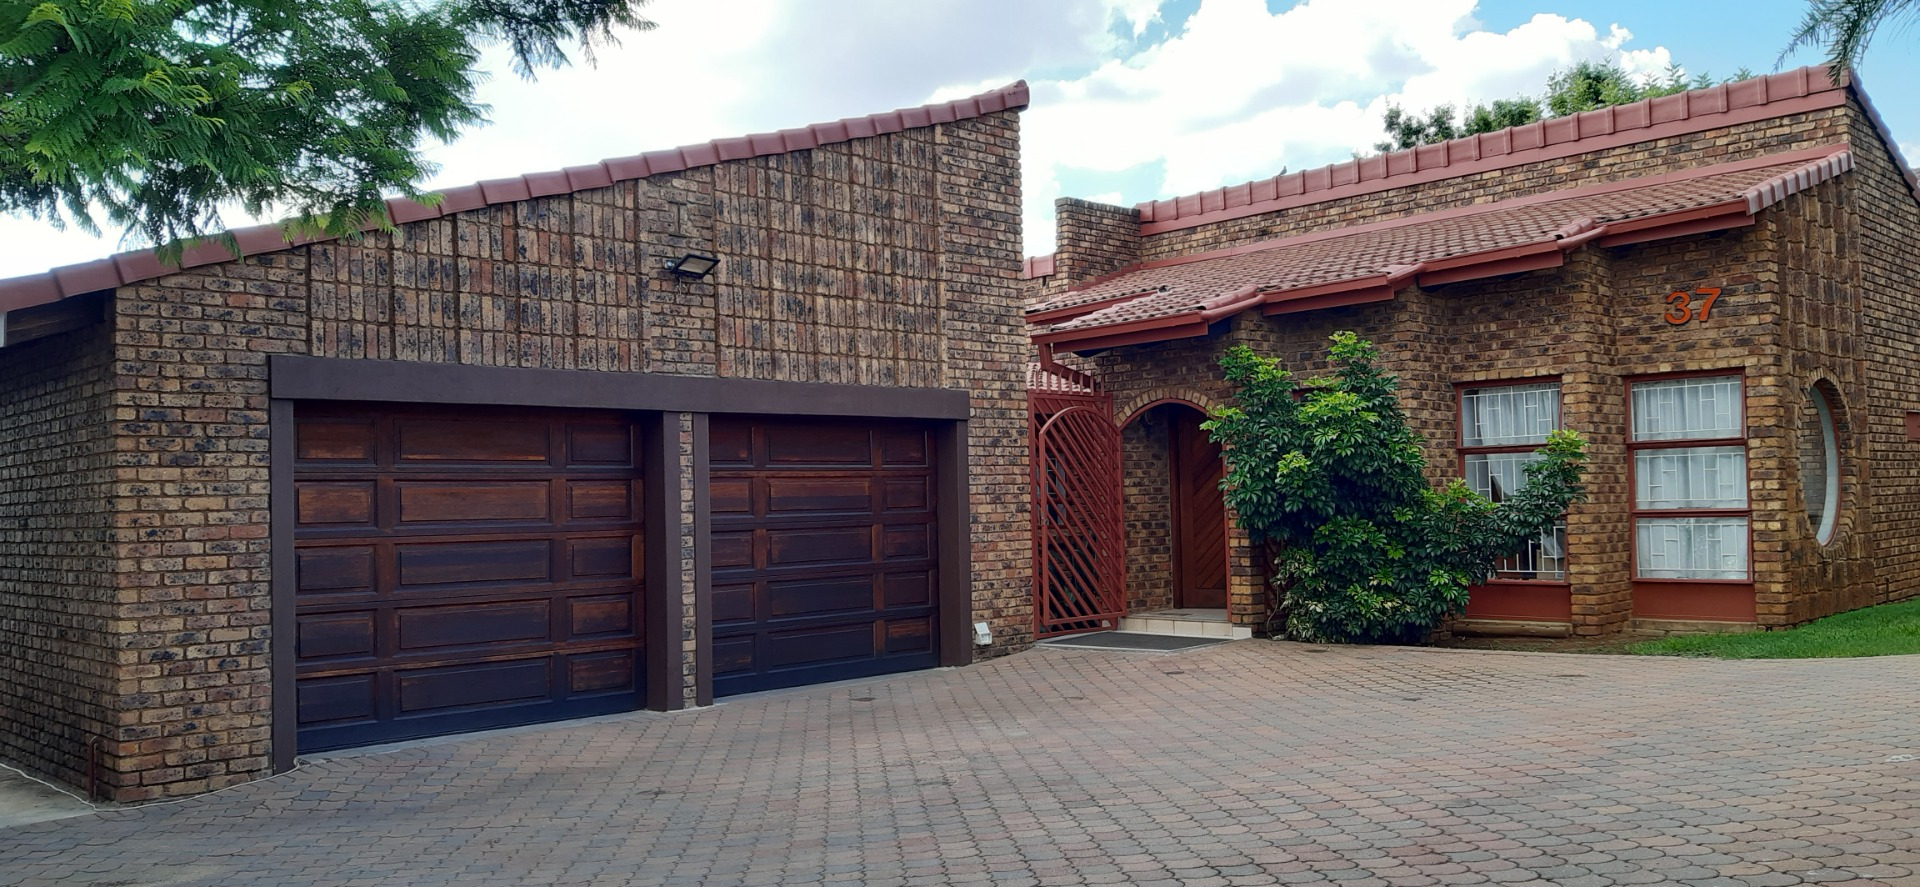 3 Bed Home with Flatlet